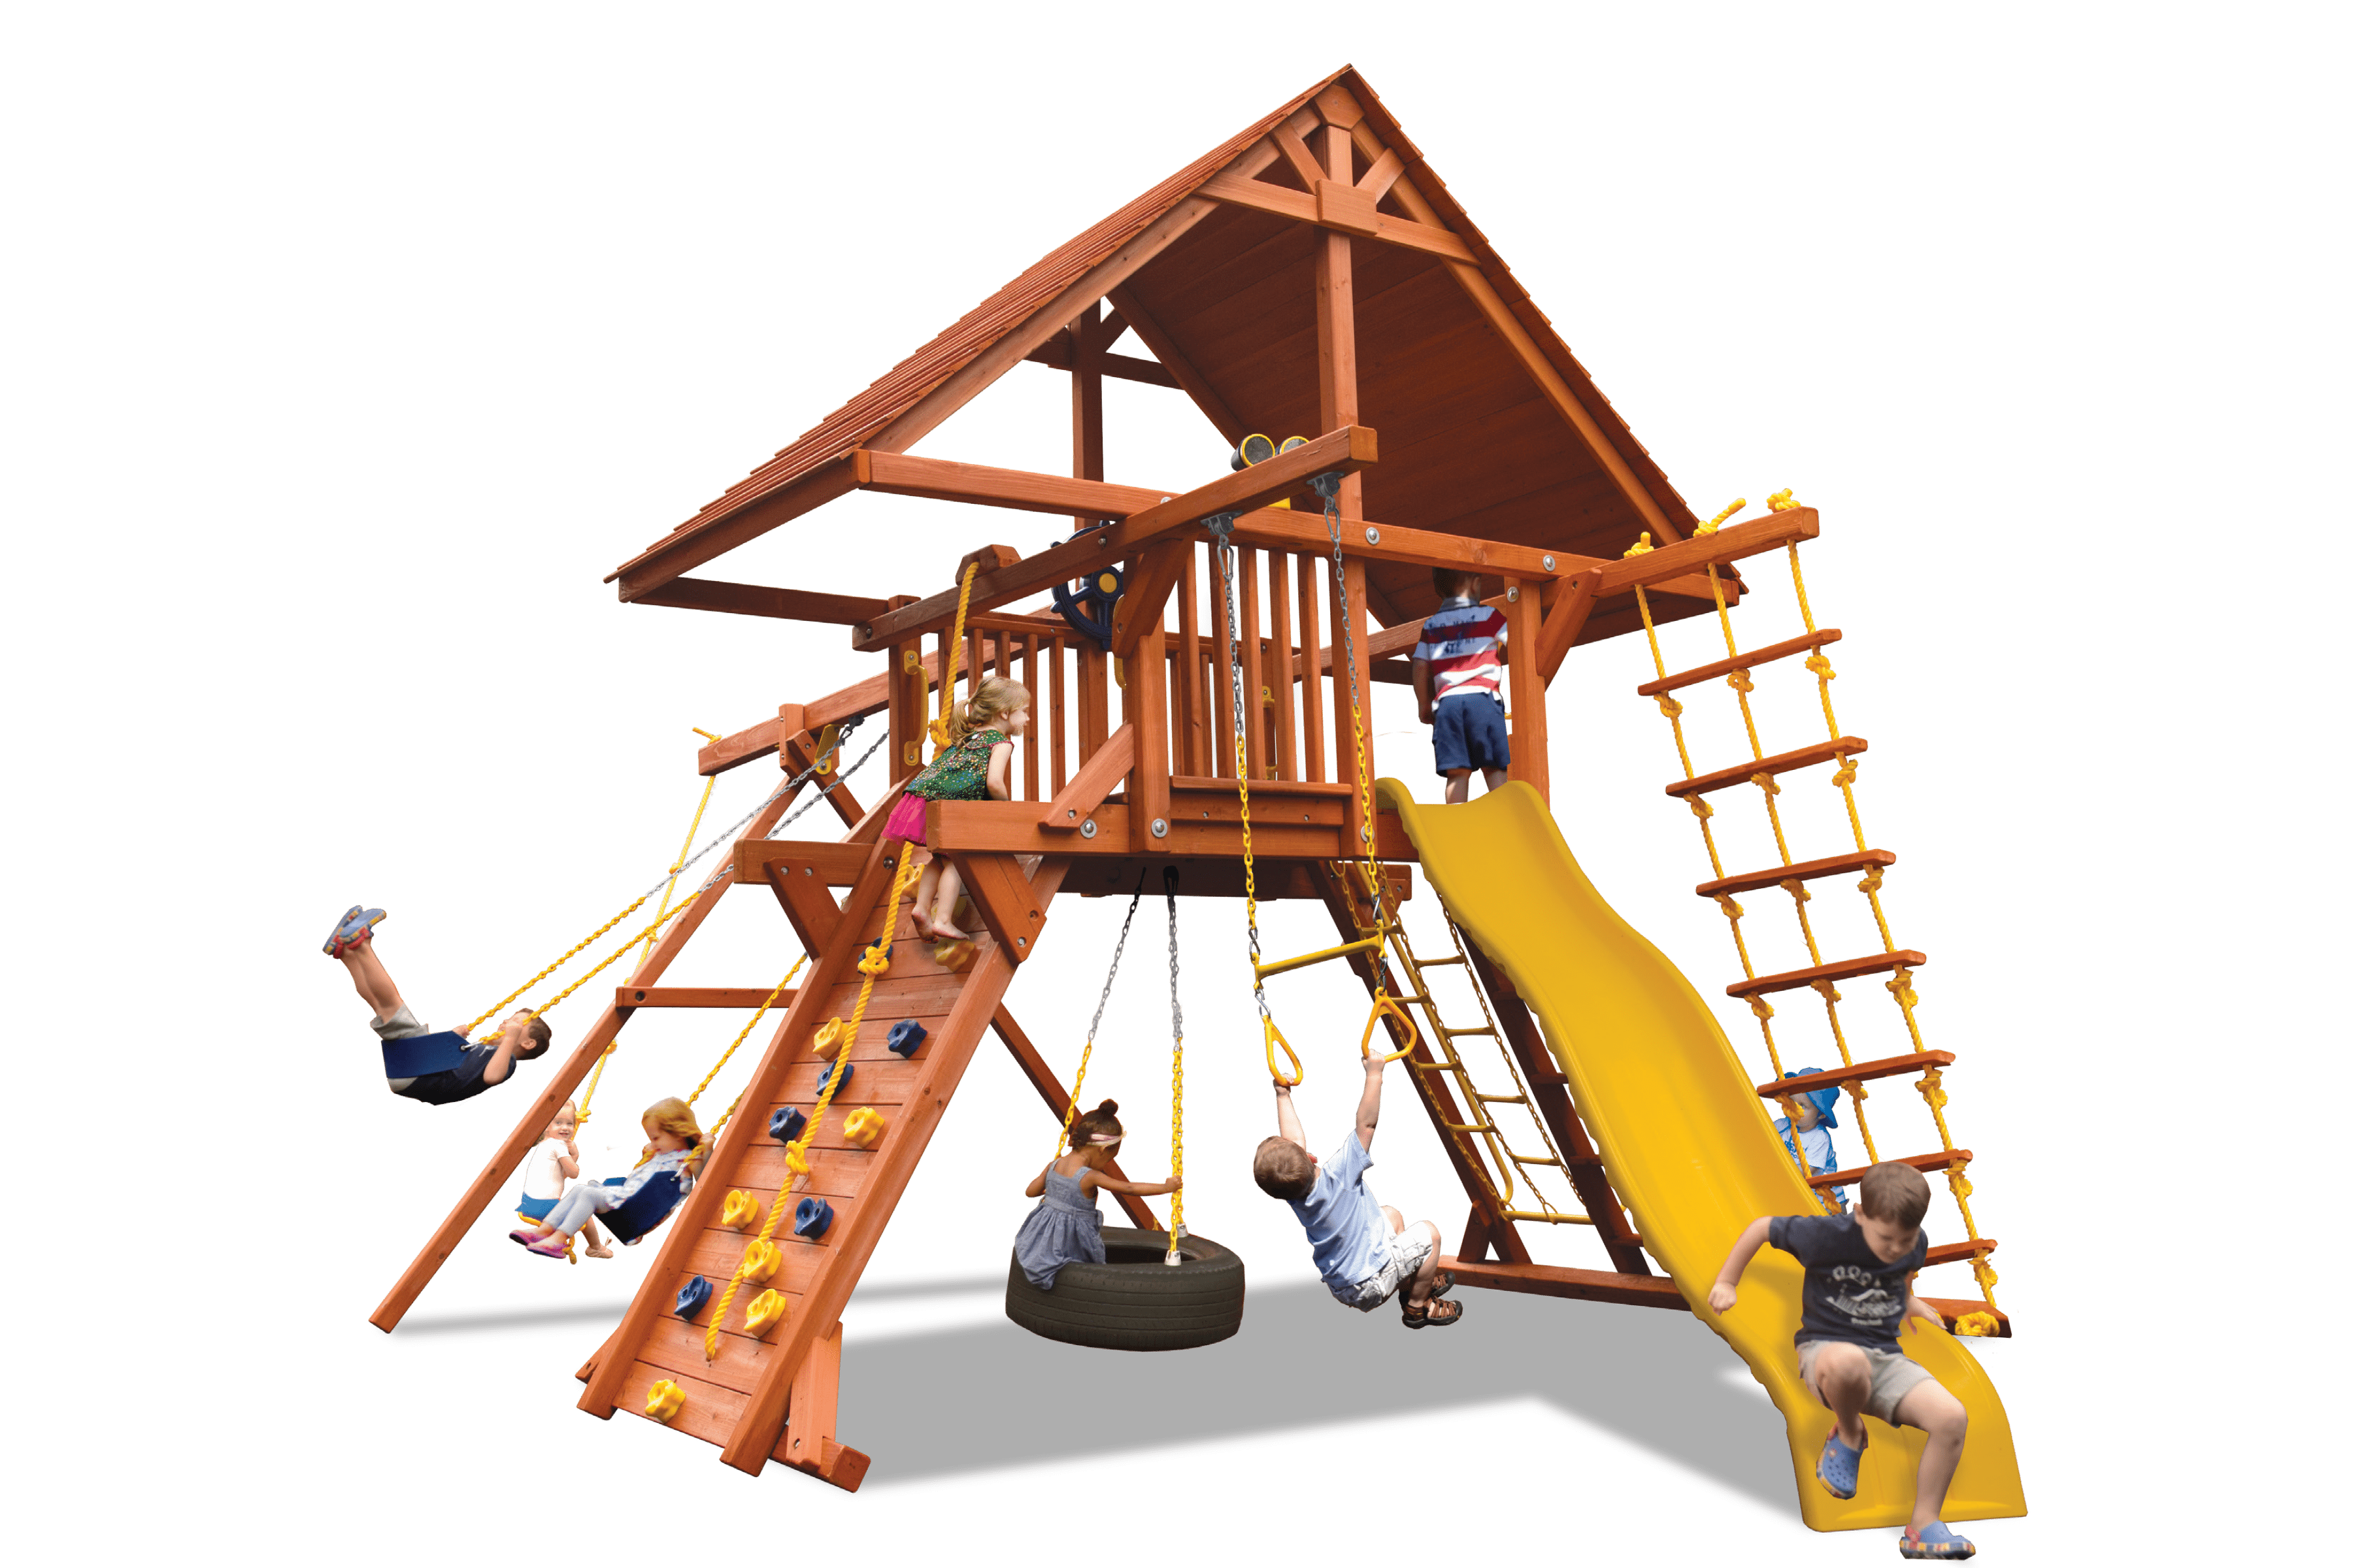 Deluxe Playcenter Combo 2 with Wood Roof (23B) - River City Play Systems